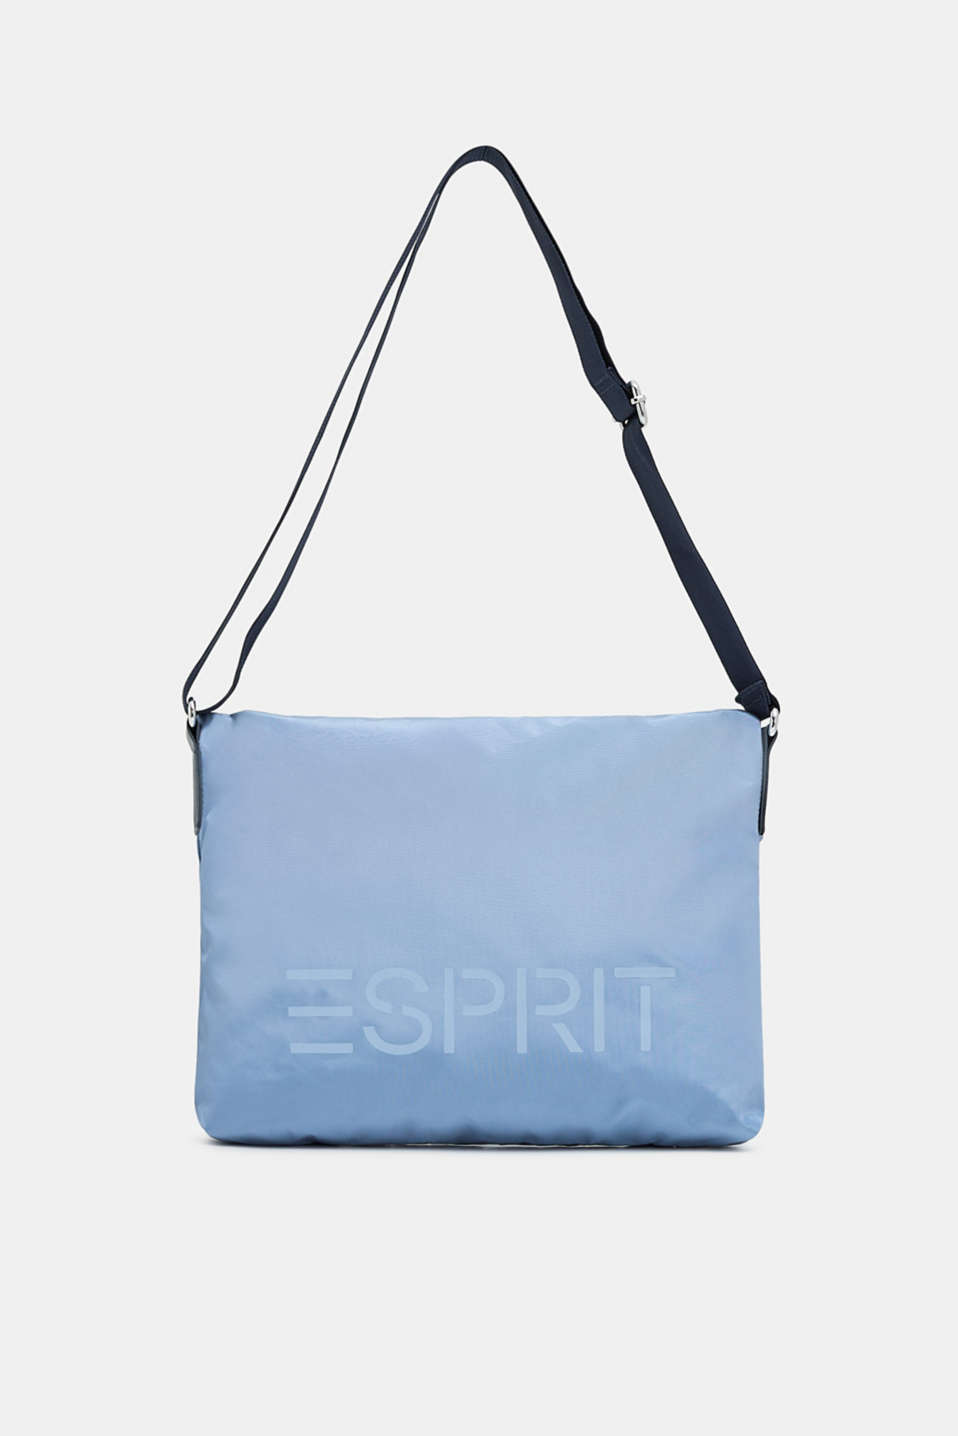 Esprit - Shoulder bag with logo, made of nylon